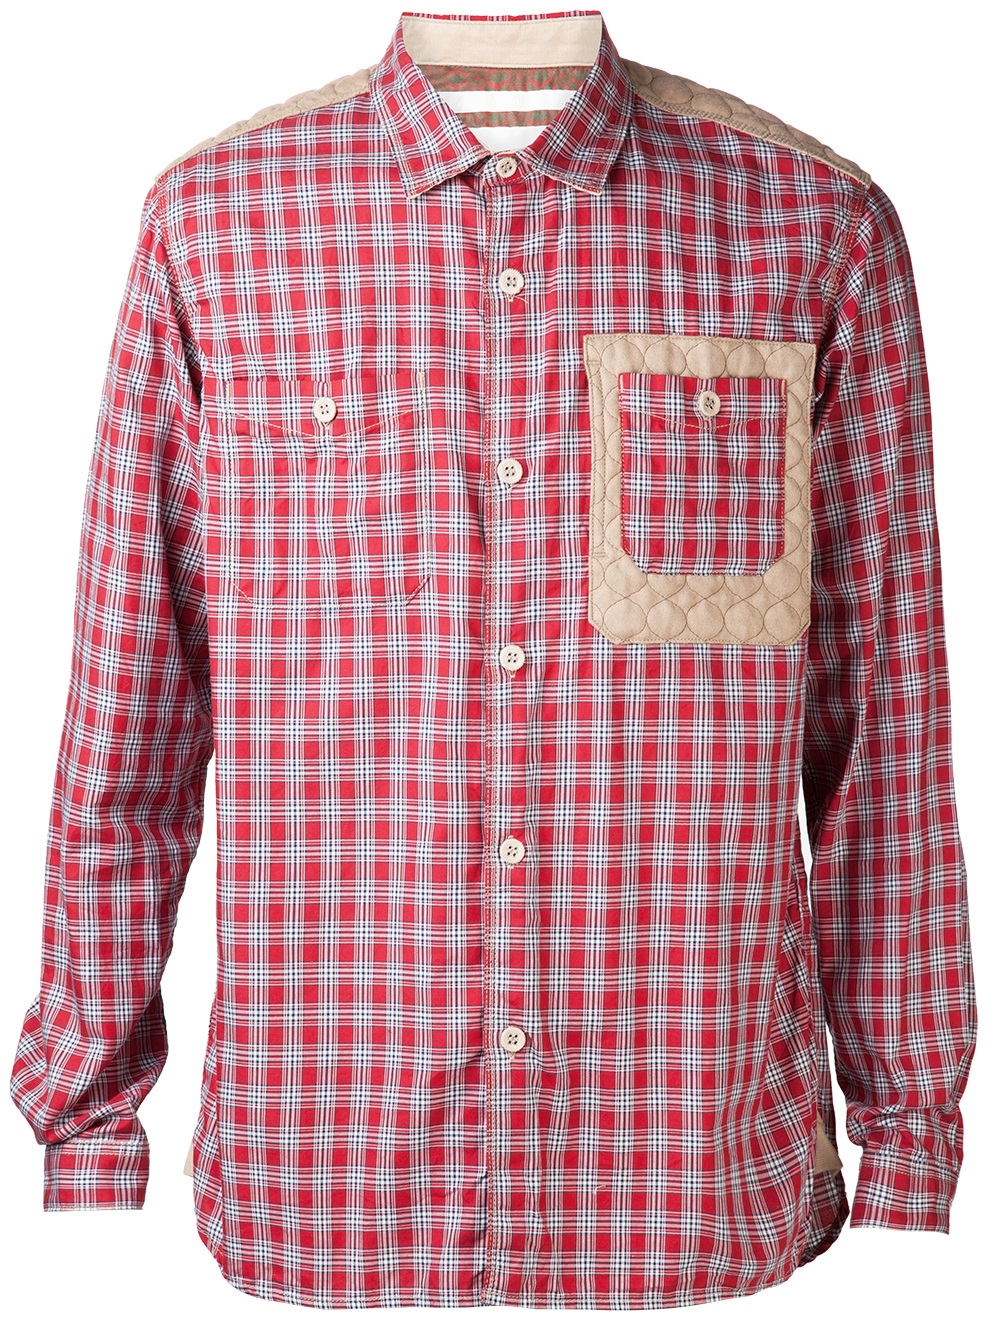 White Mountaineering Plaid Pattern Shirt In Red For Men Lyst